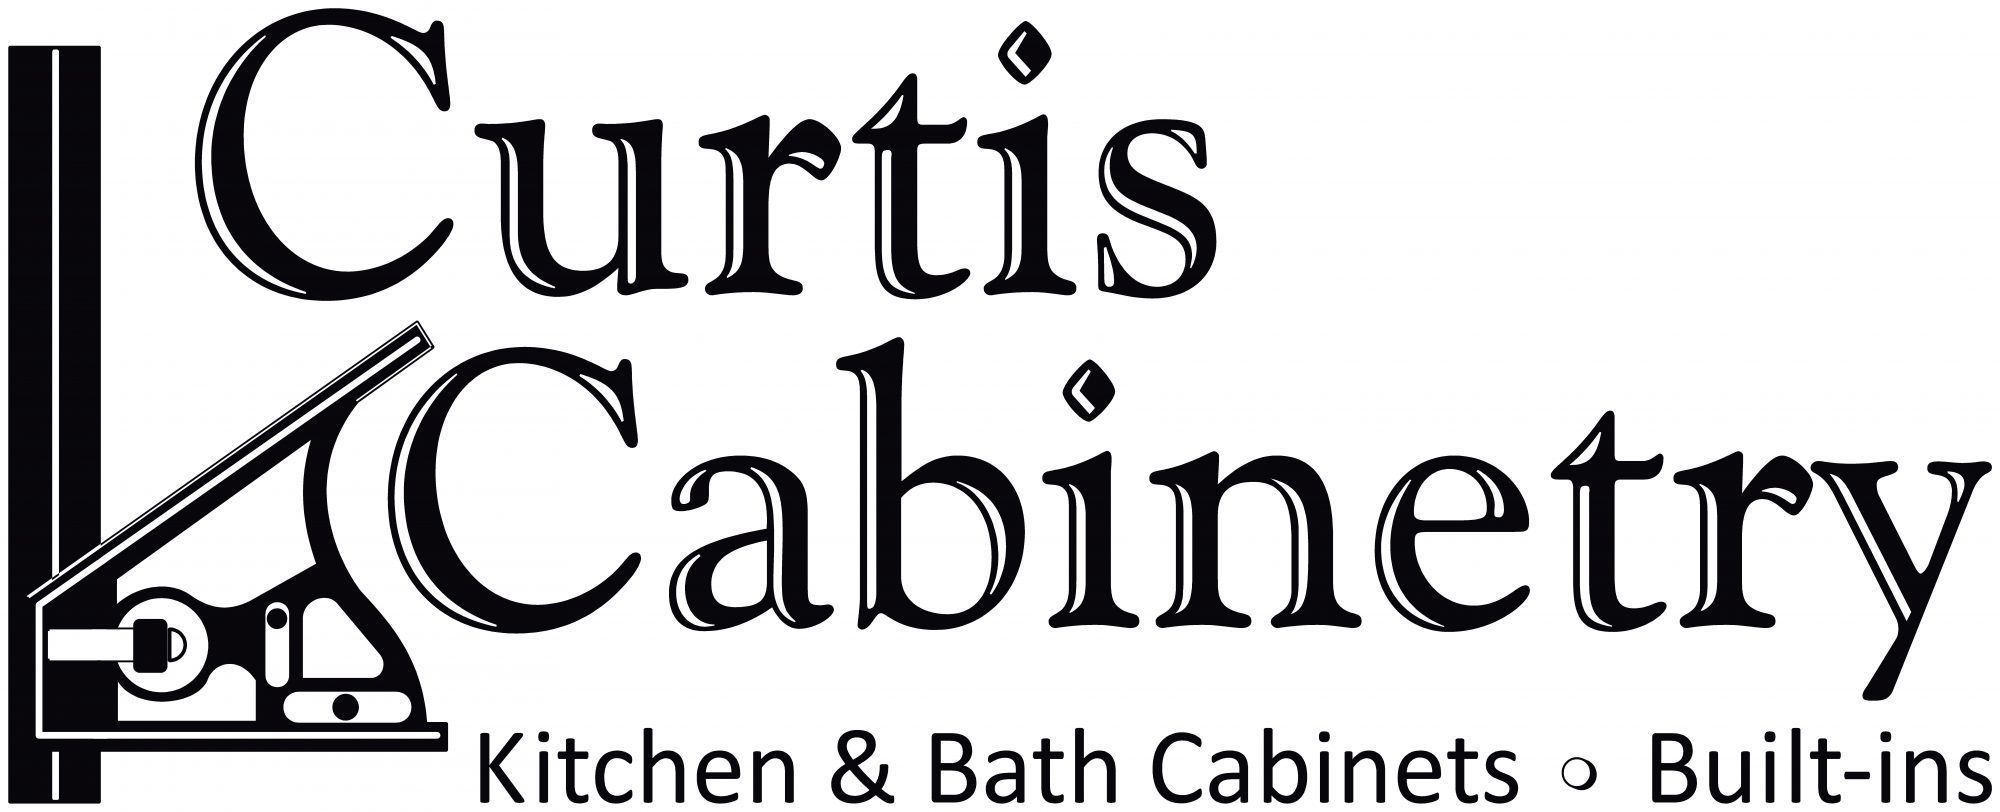 Kitchen Cabinets By Curtis Cabinetry